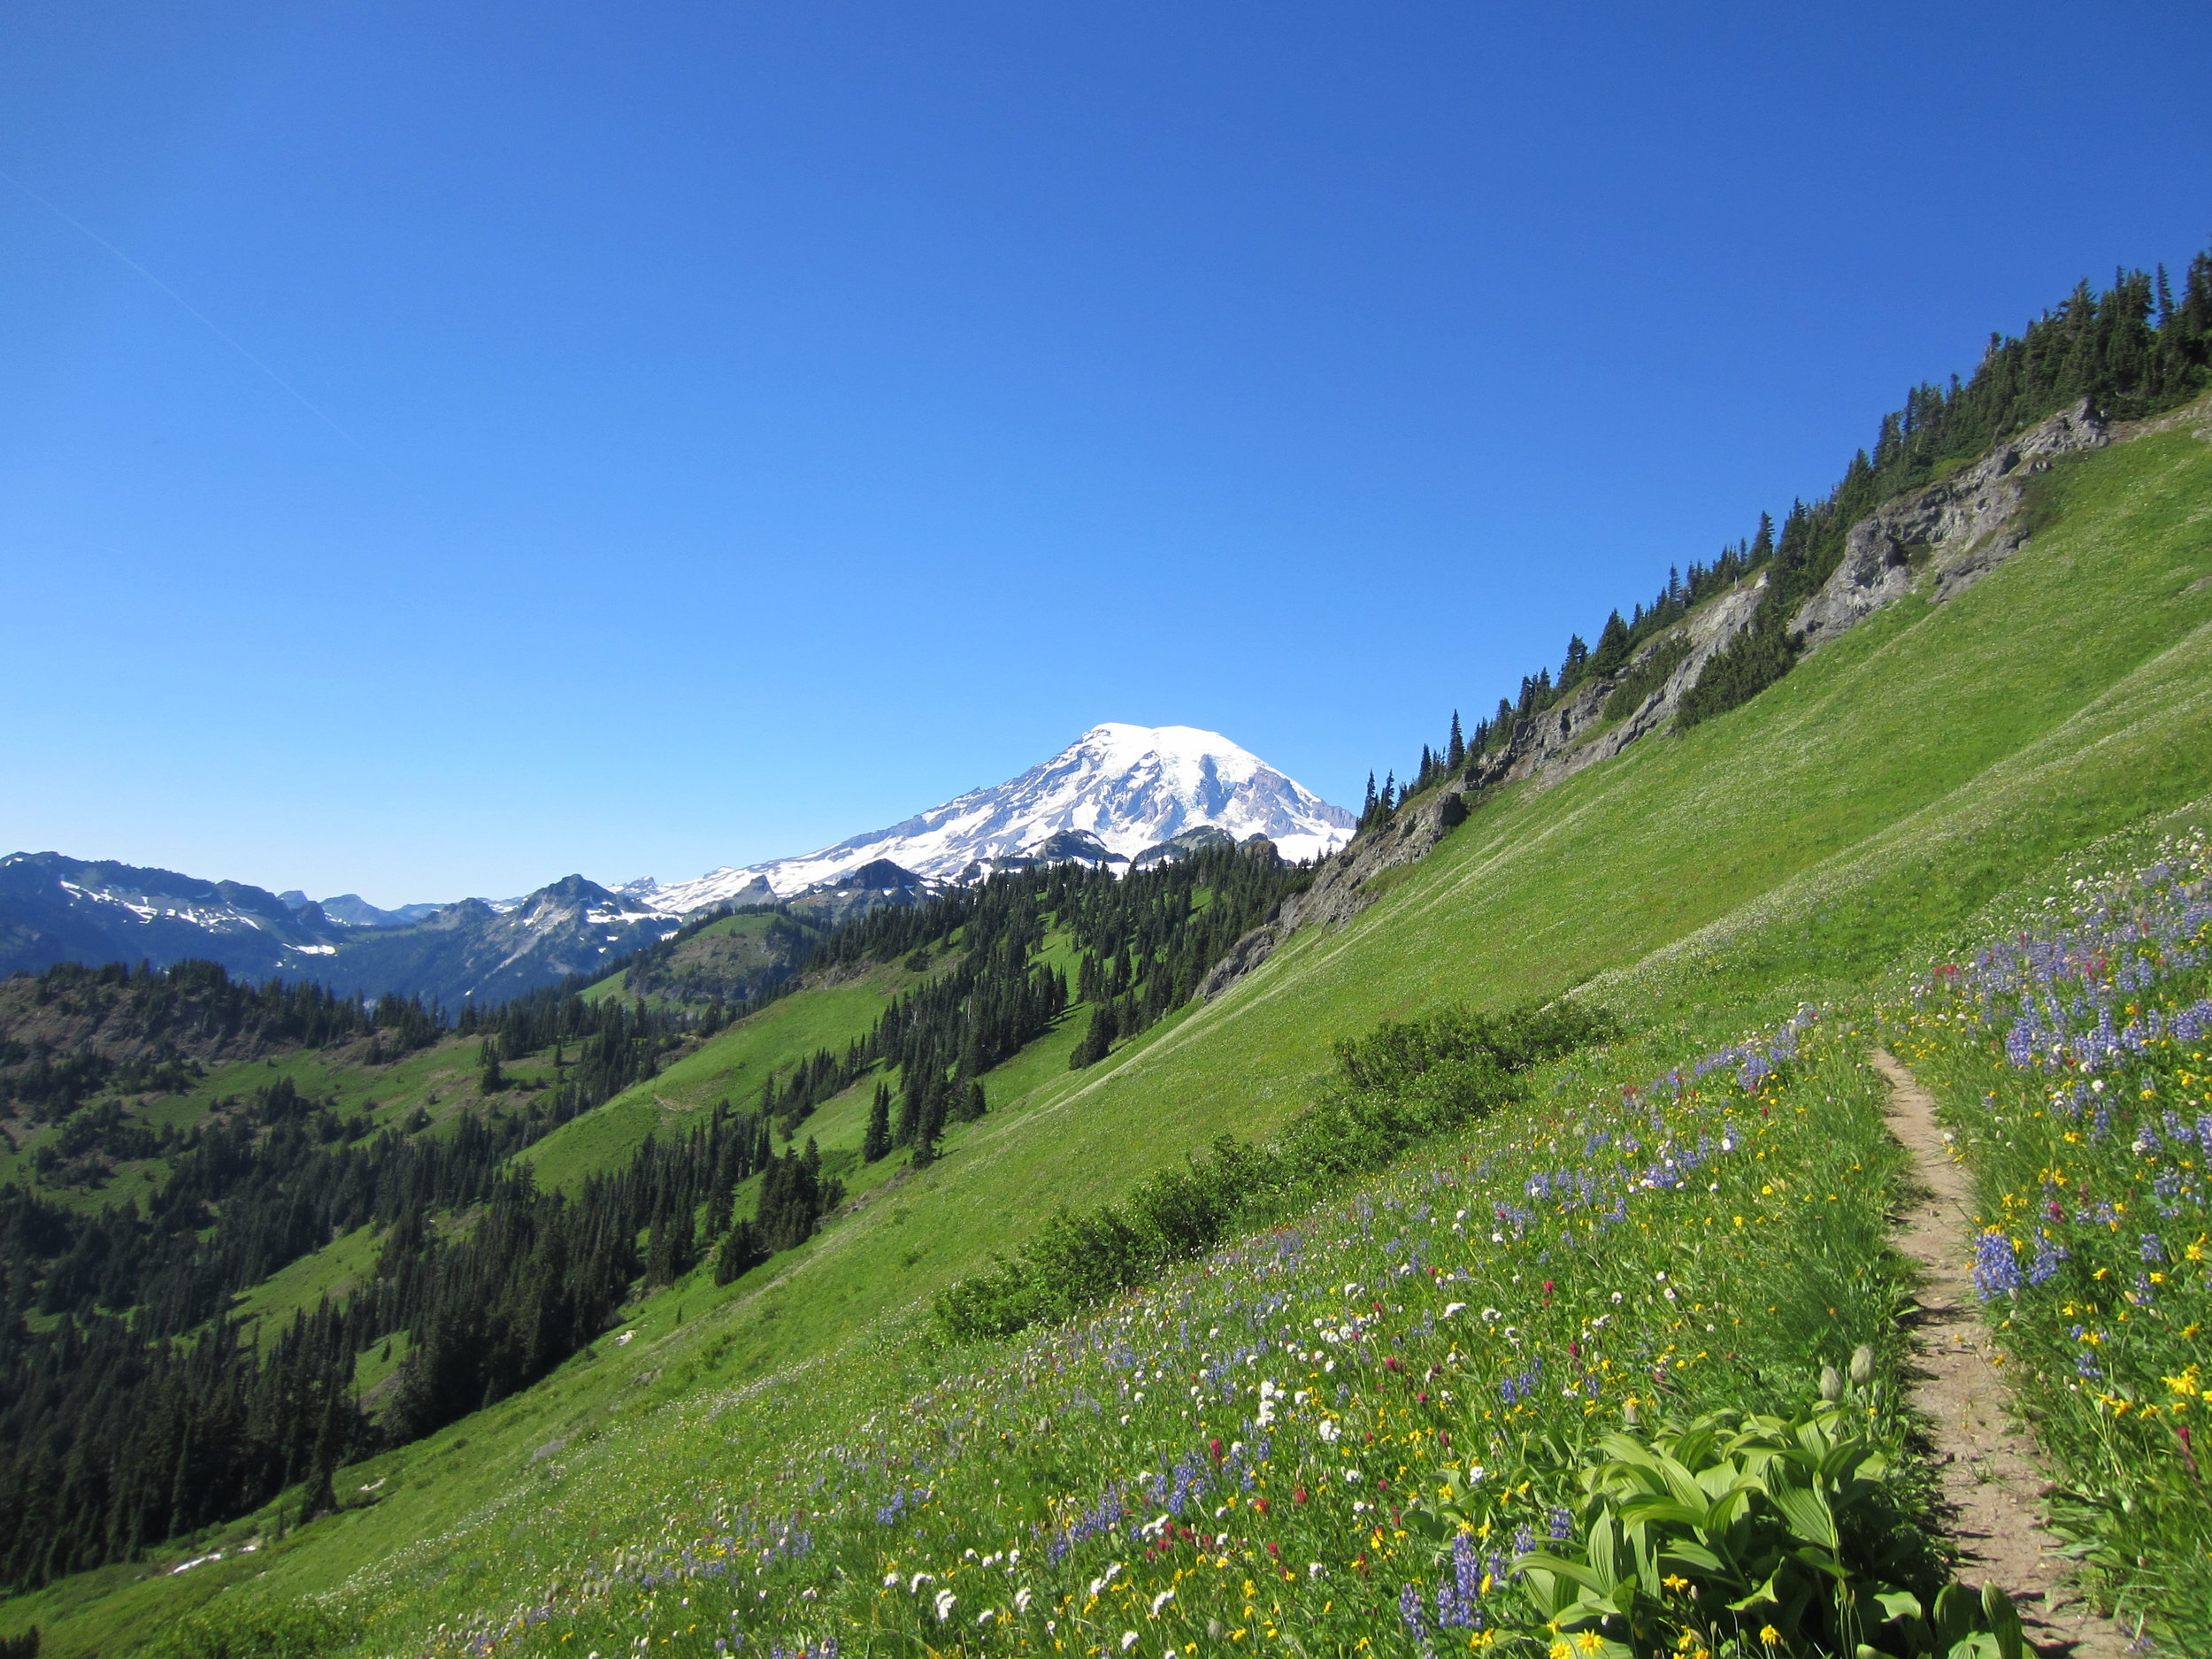 An outdoor dirt trail in a field of wildflowers with trees and a mountain with snow and blue sky